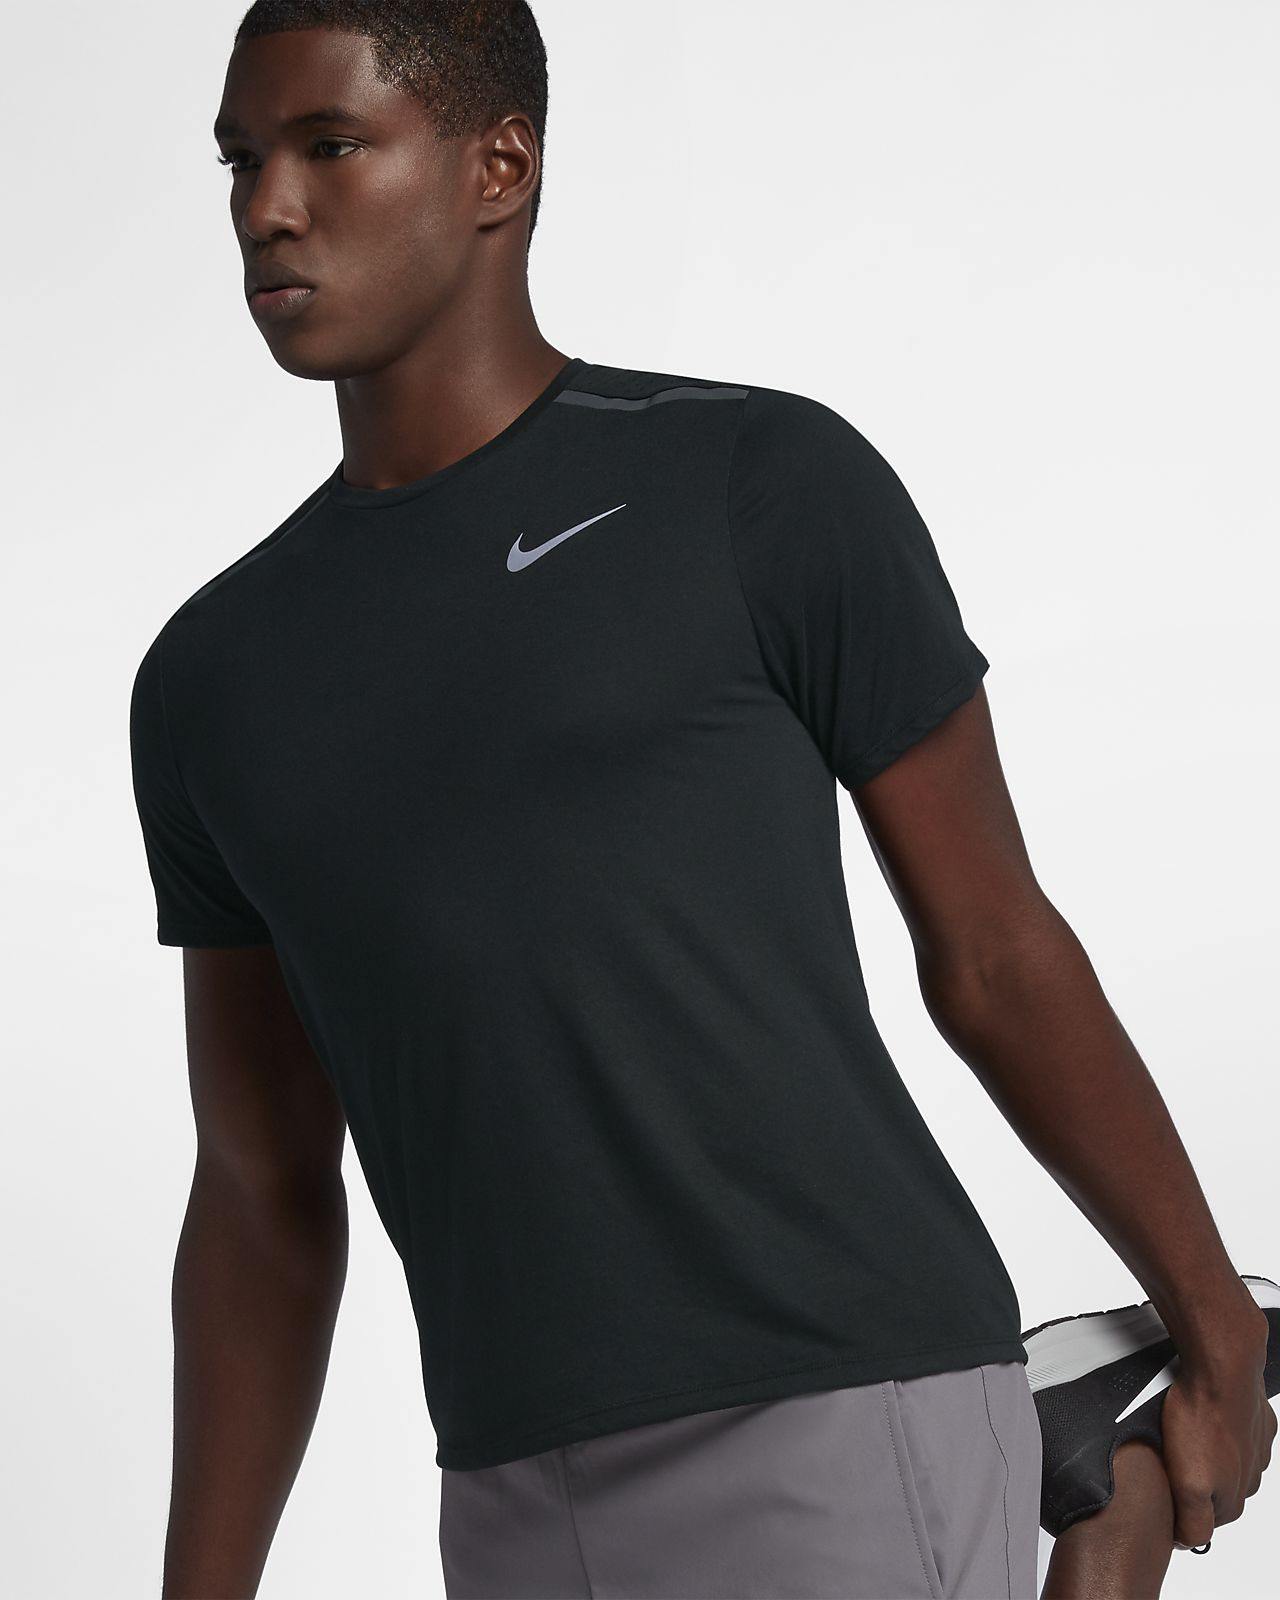 2652af834 Nike Dri-FIT Rise 365 Men s Short-Sleeve Running Top. Nike.com GB